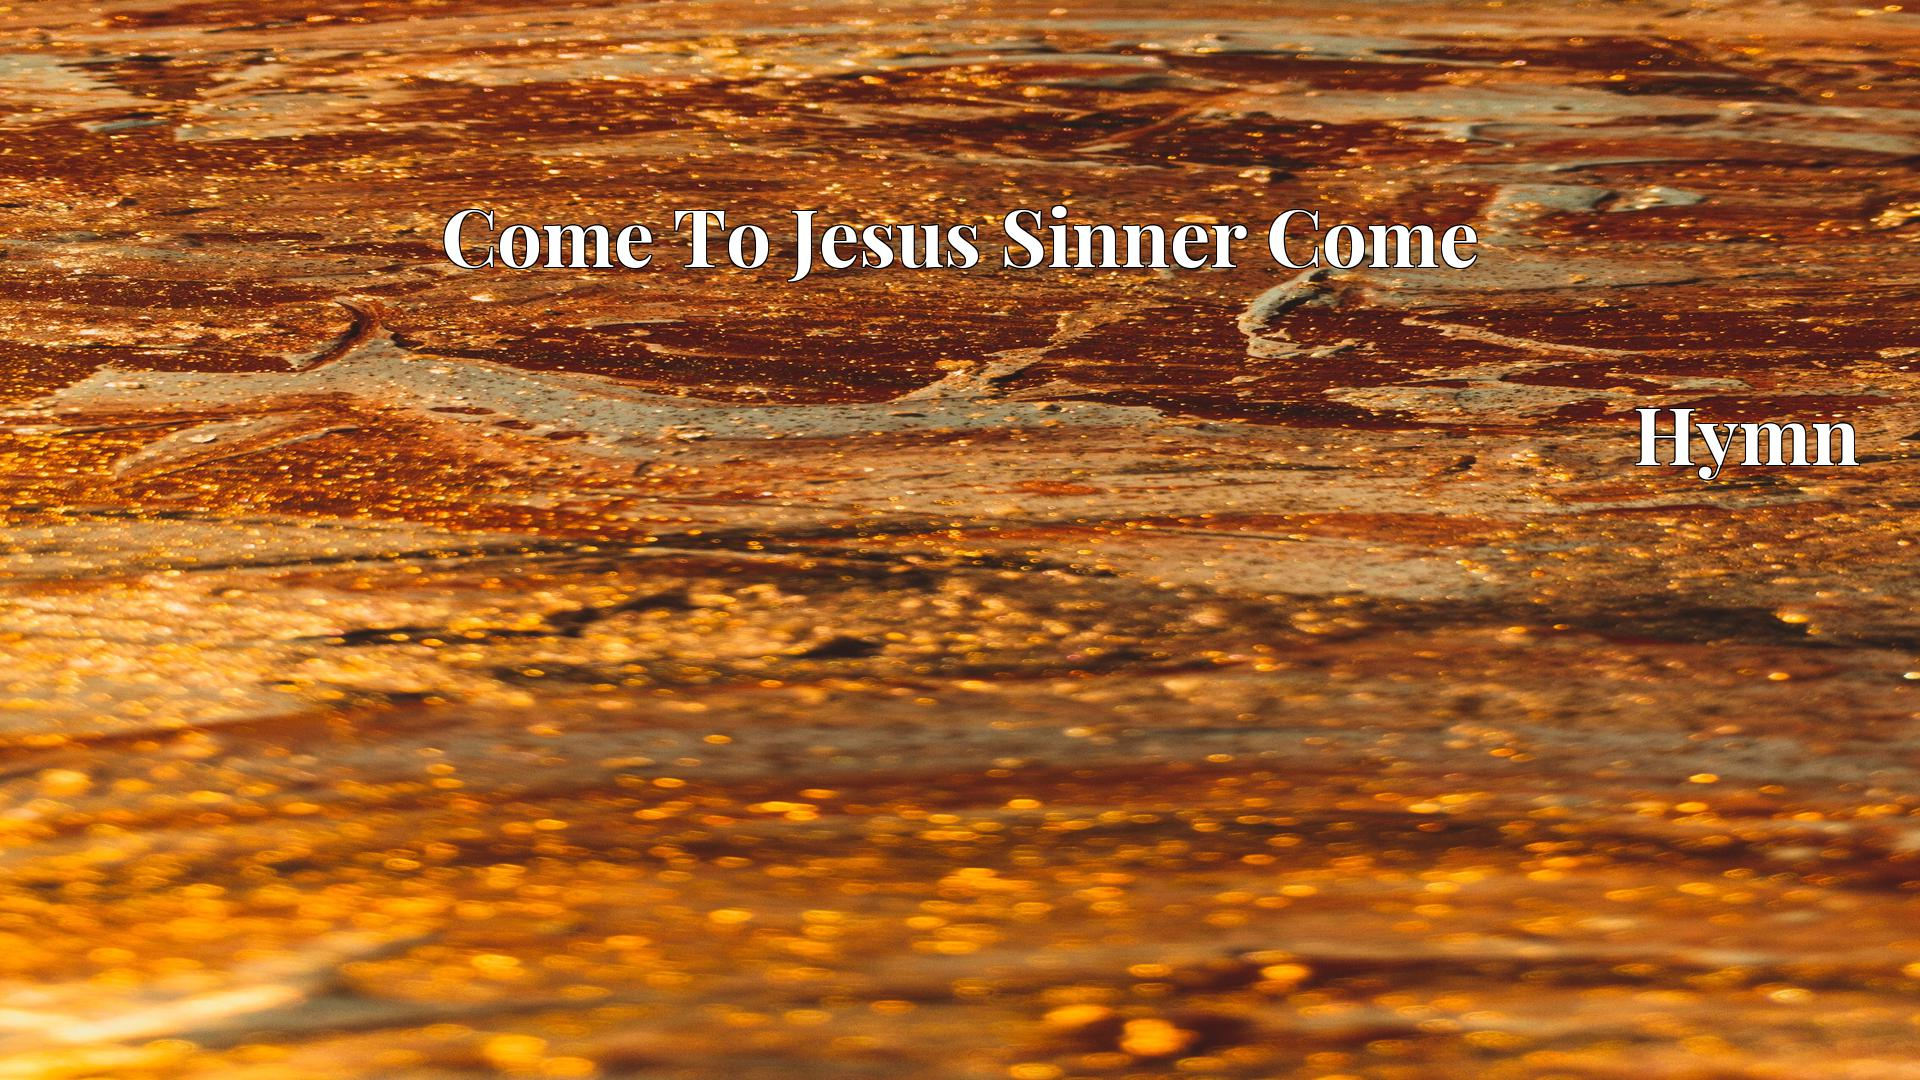 Come To Jesus Sinner Come - Hymn